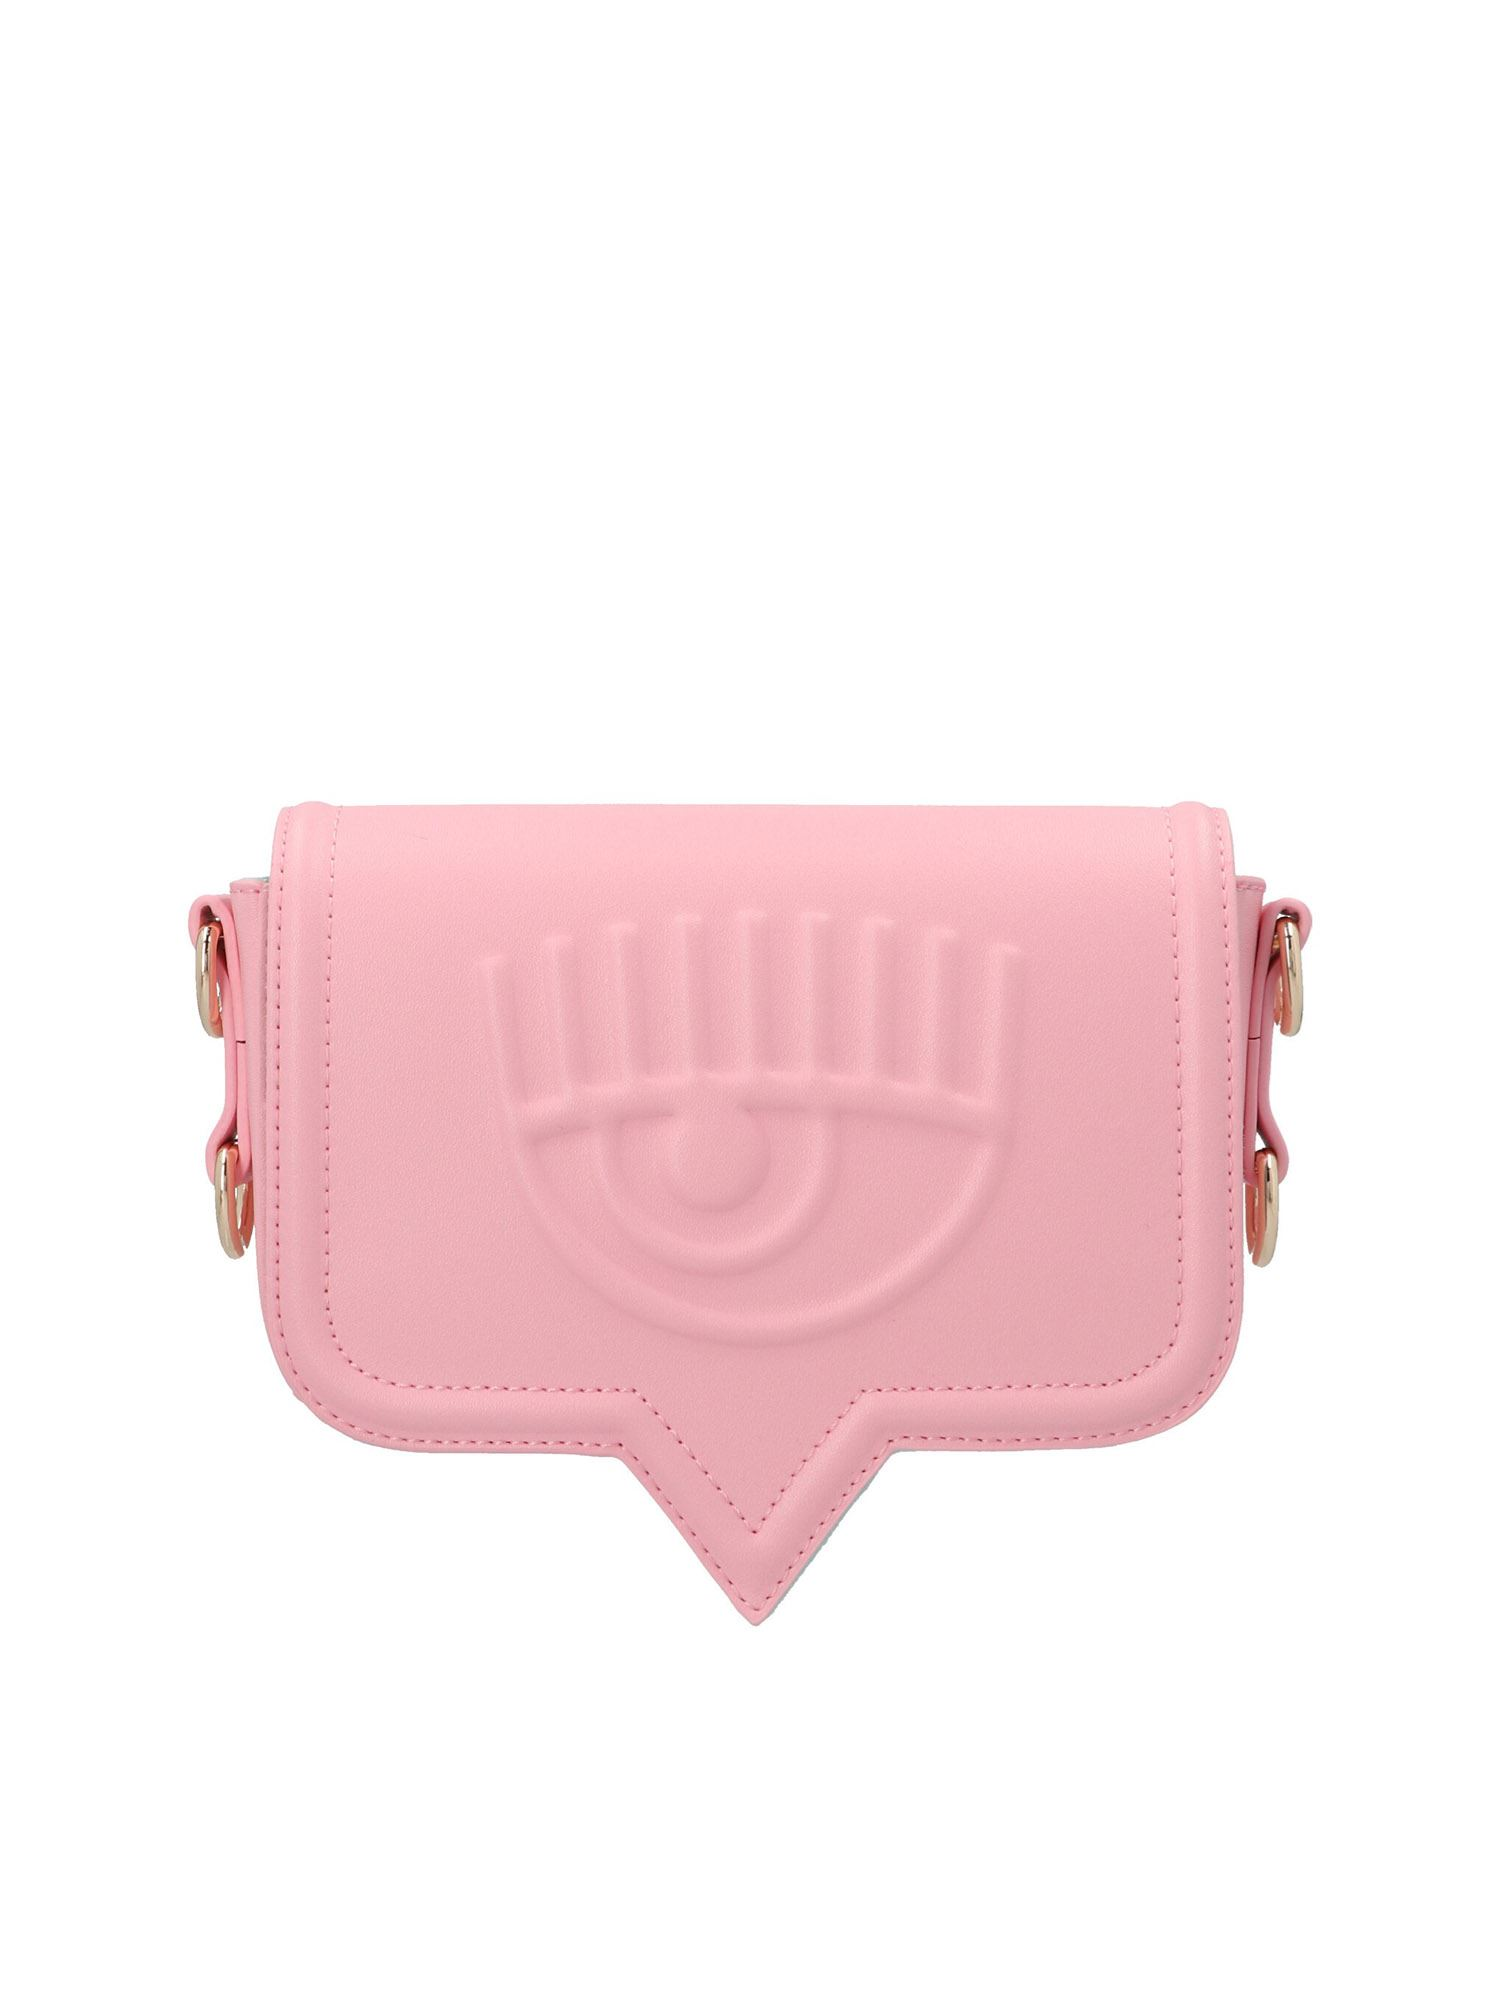 Chiara Ferragni SMALL EYELIKE BAG IN PINK